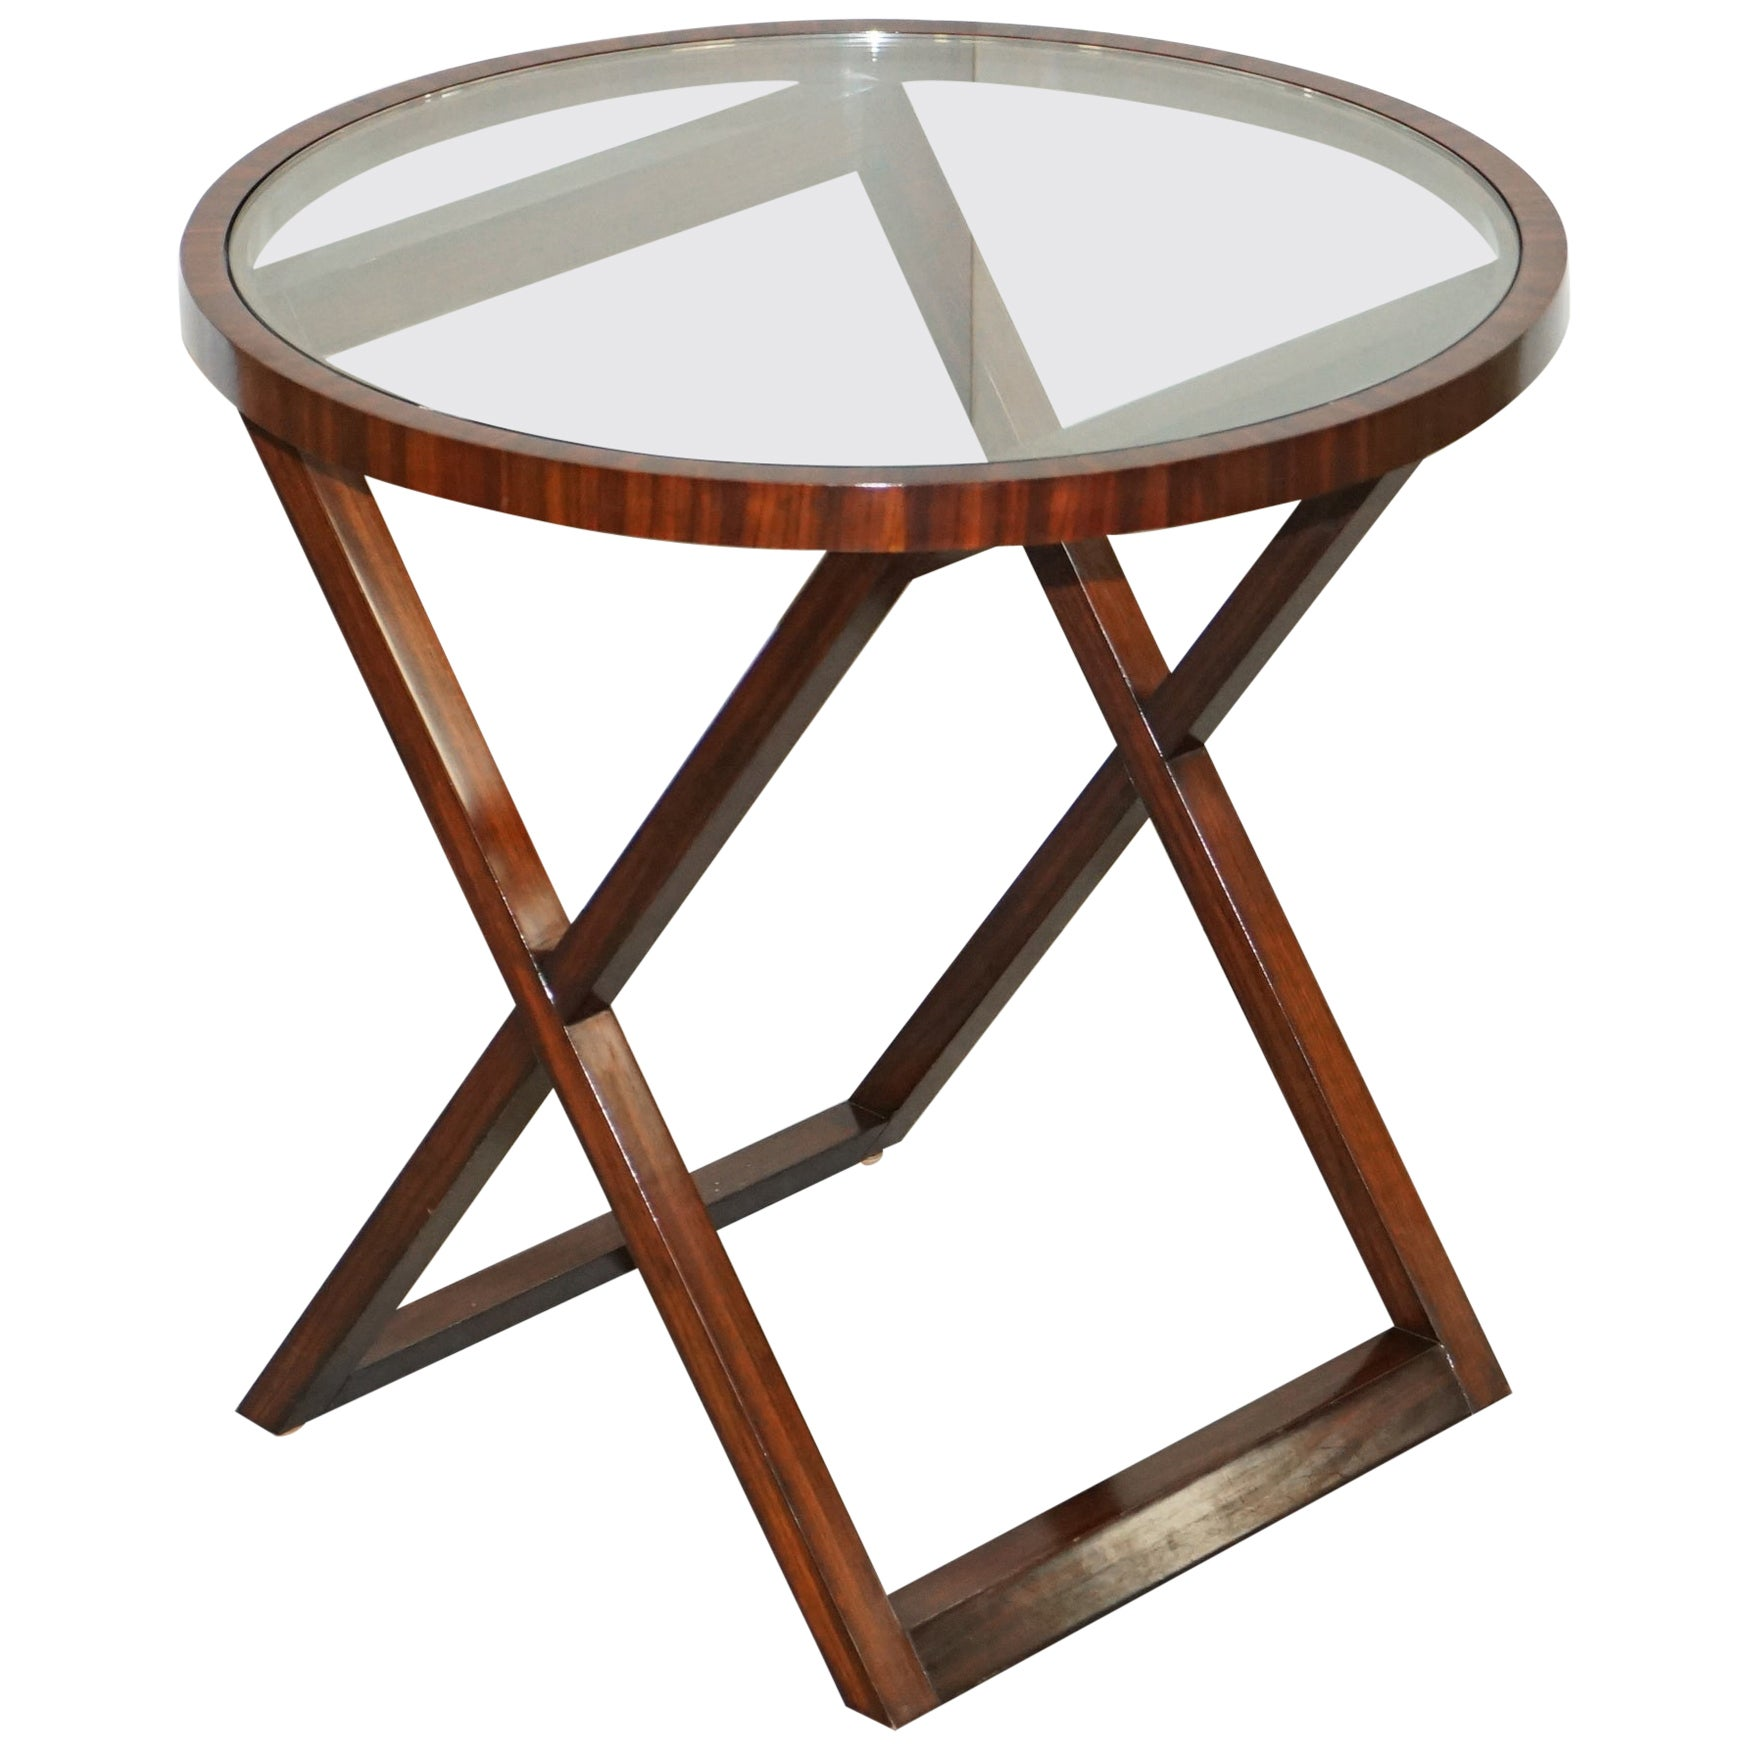 Stunning Ralph Lauren American Mahogany Round Side Table Exquisite Timber Patina